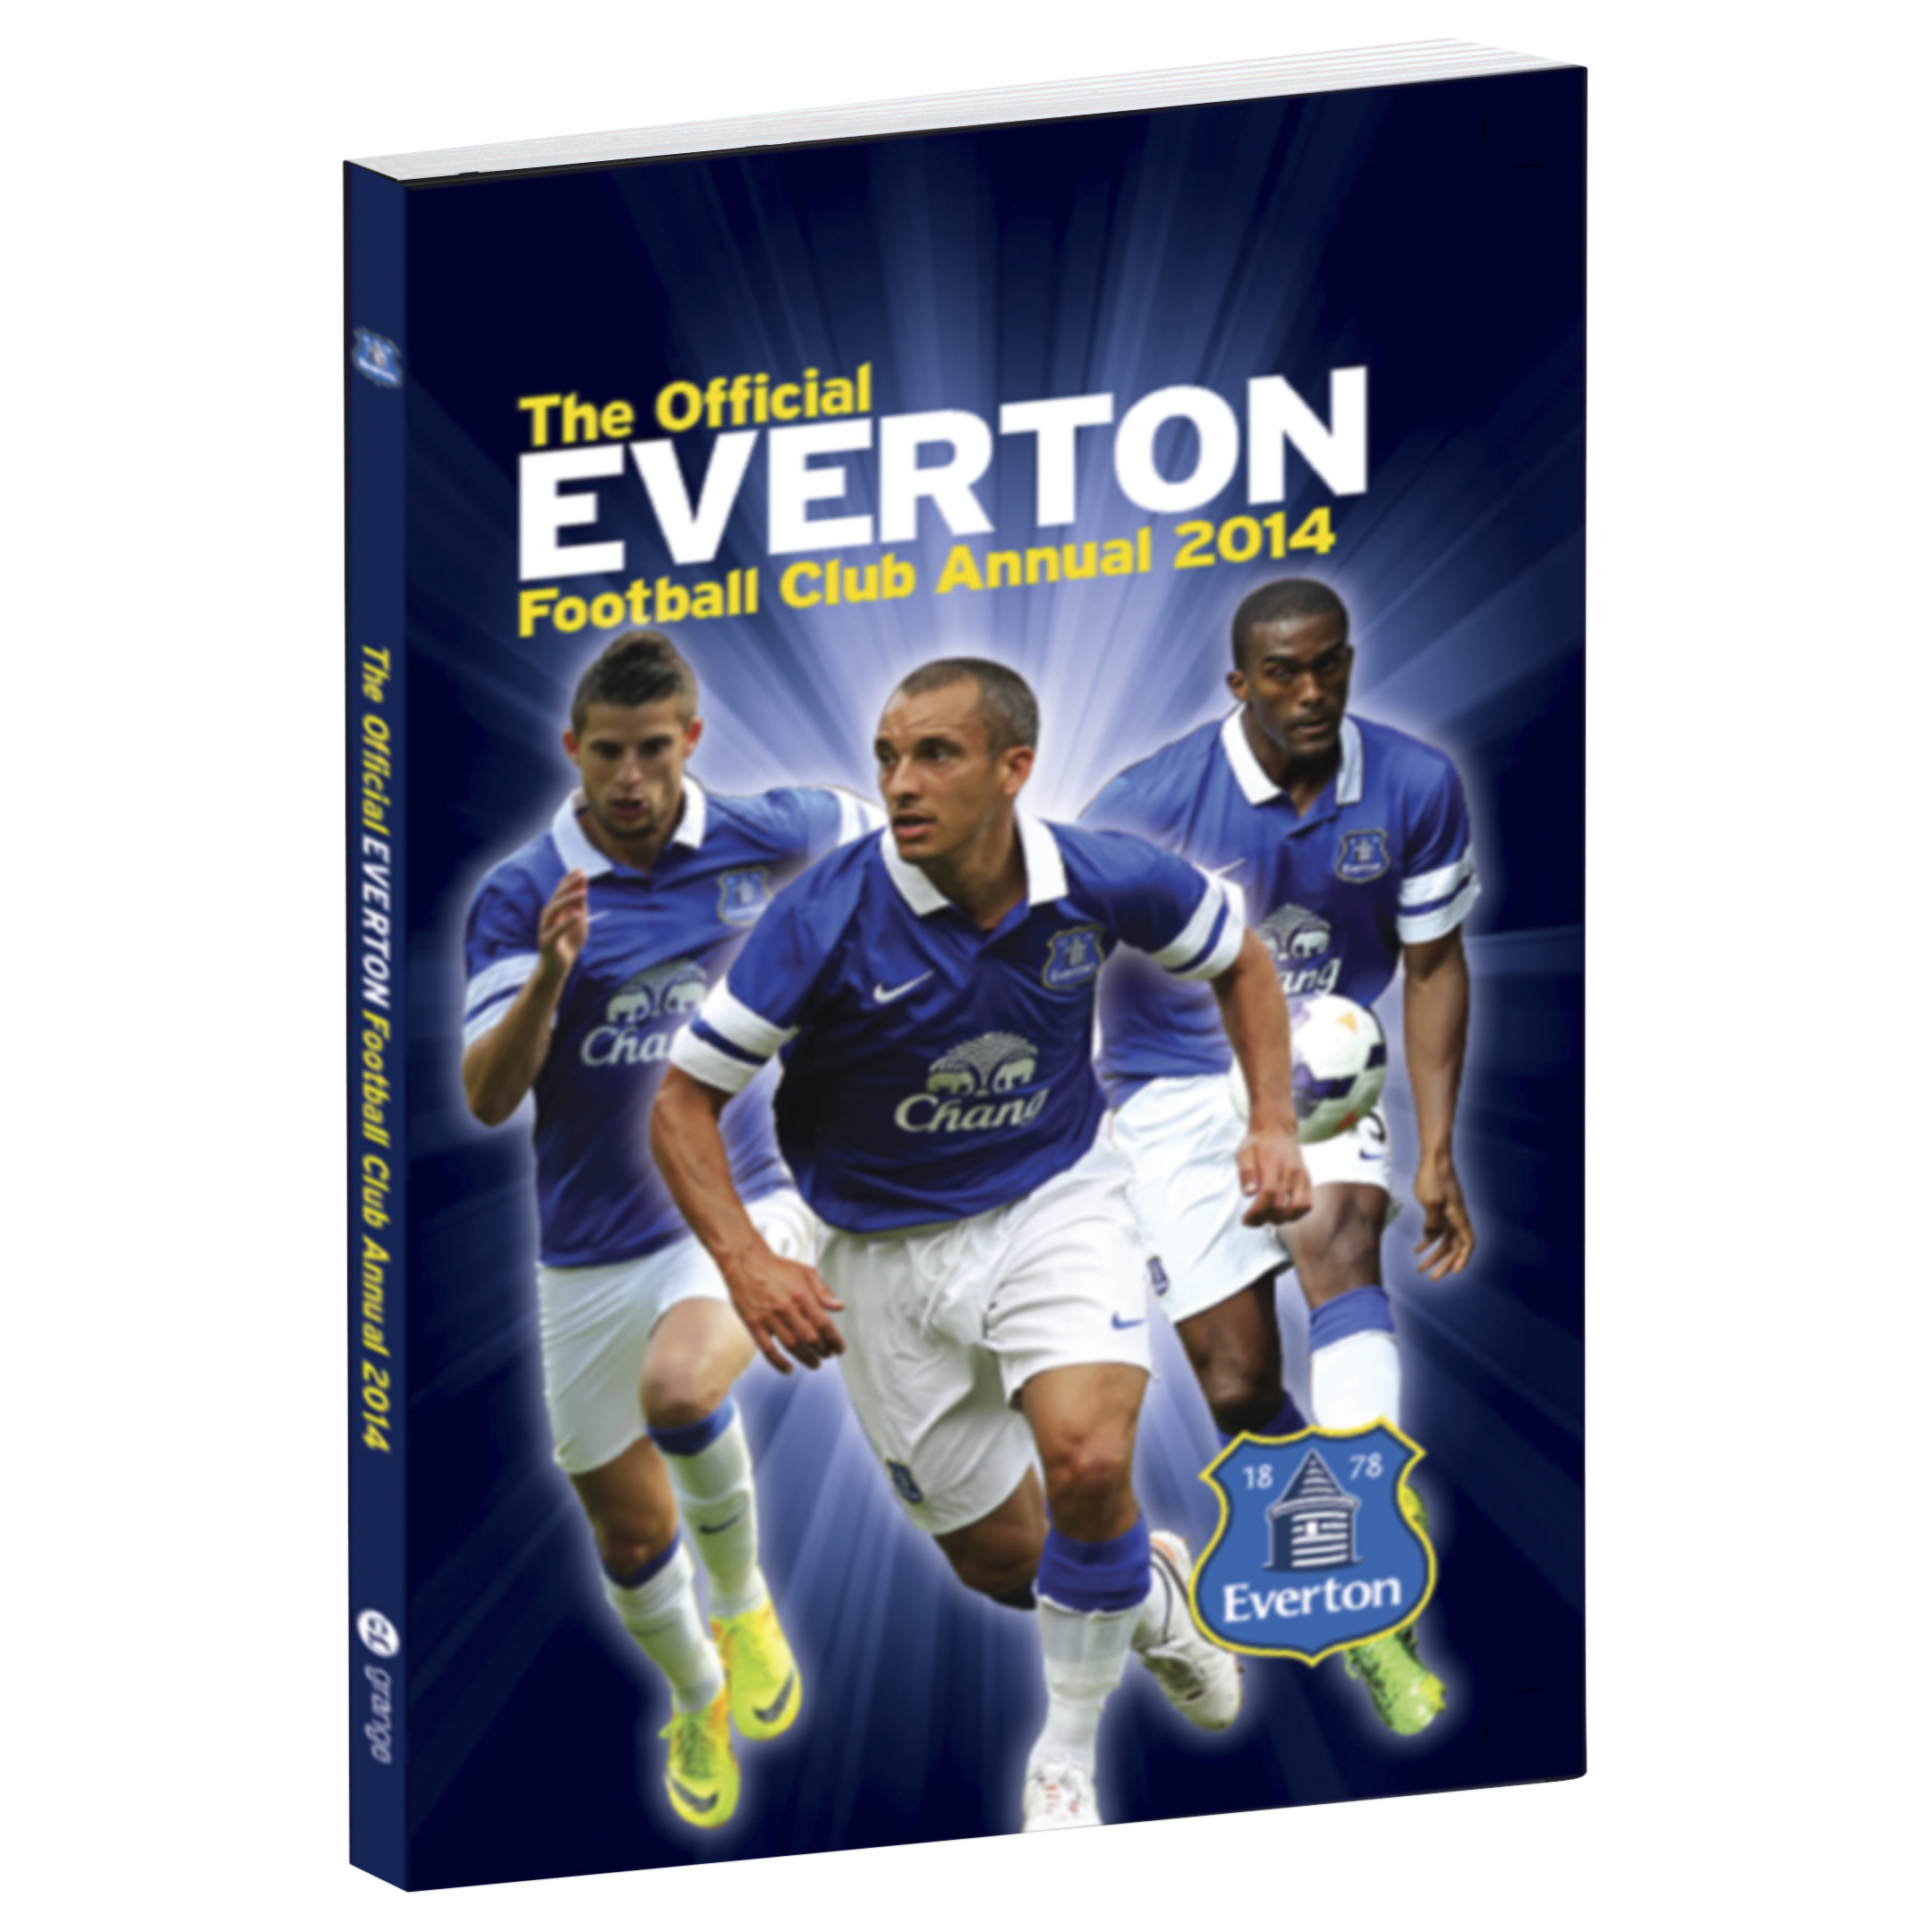 Everton Annual 2014